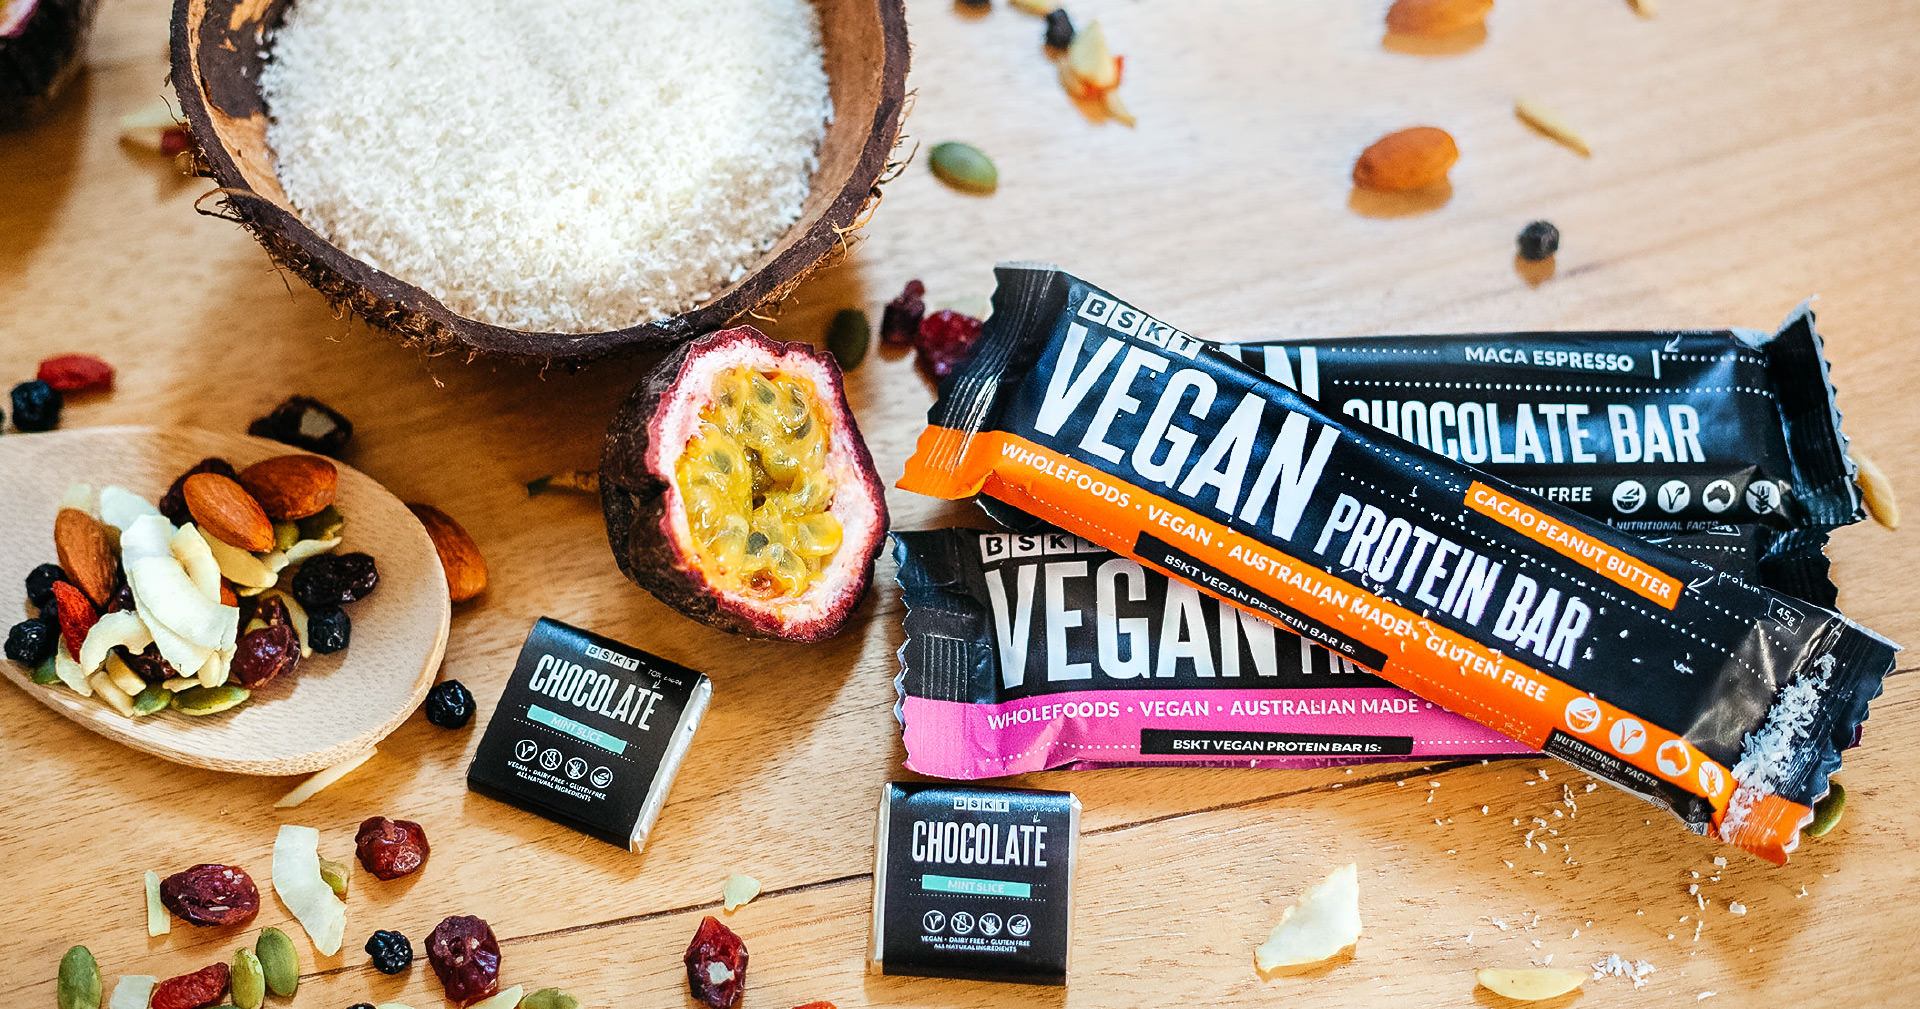 Photography and styling of wholefood products